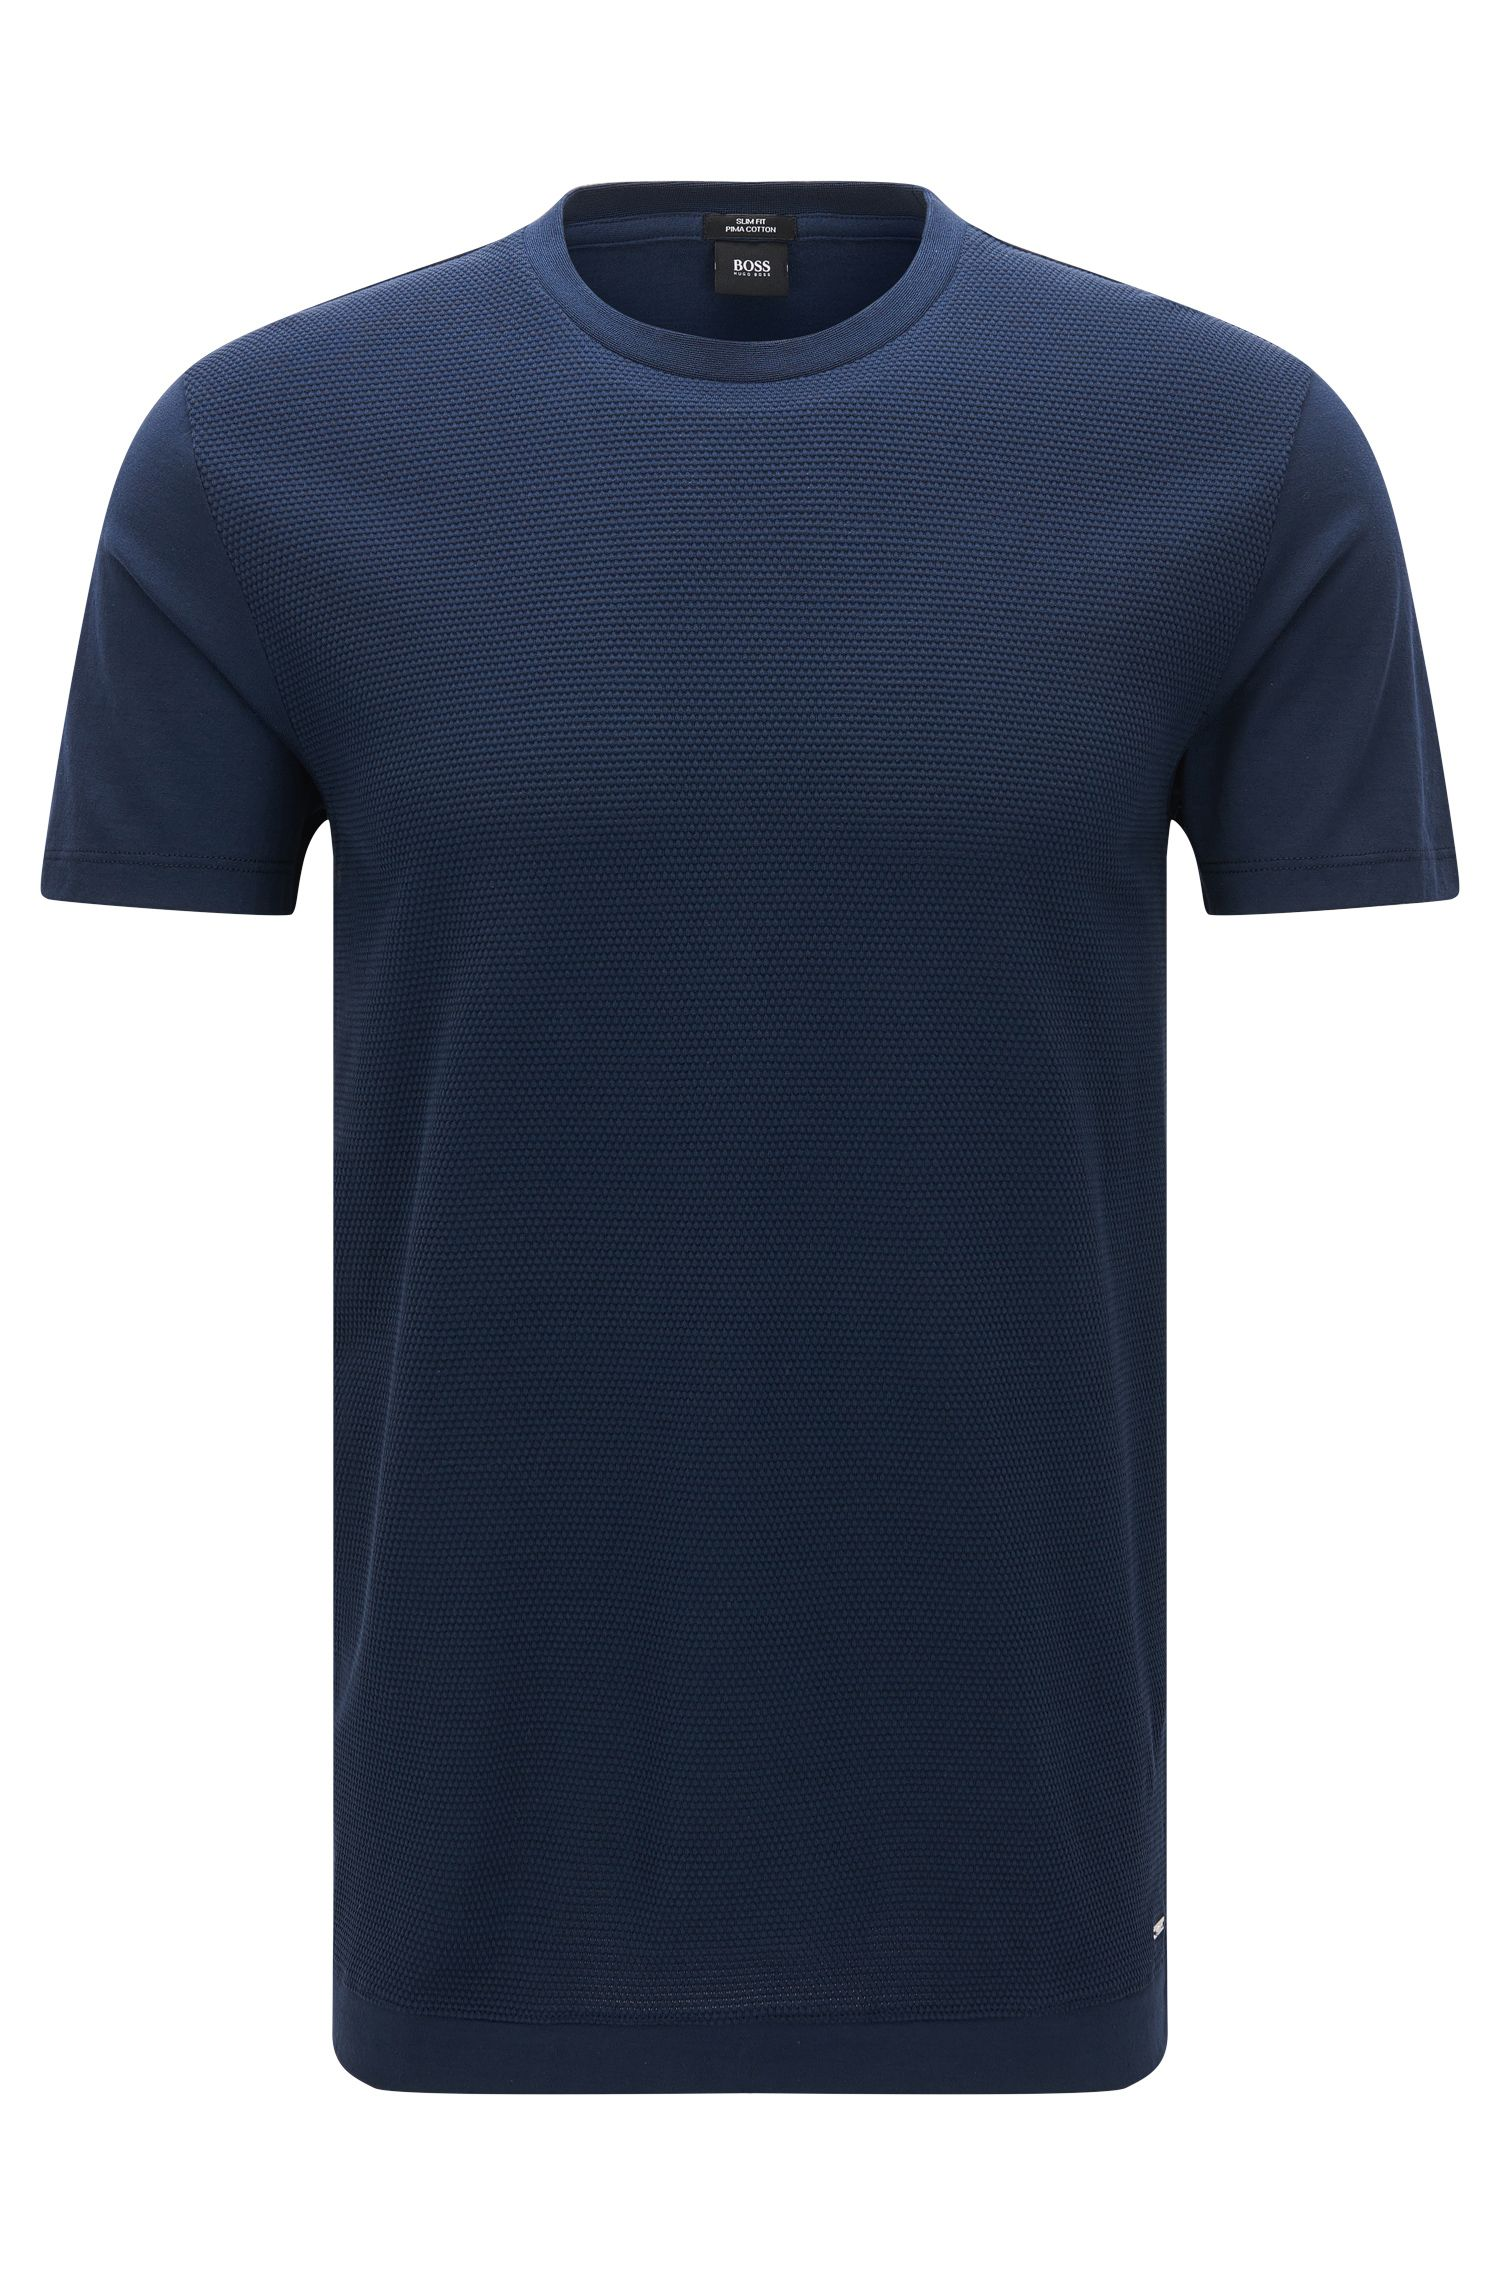 Crew-neck T-shirt with structured front panel